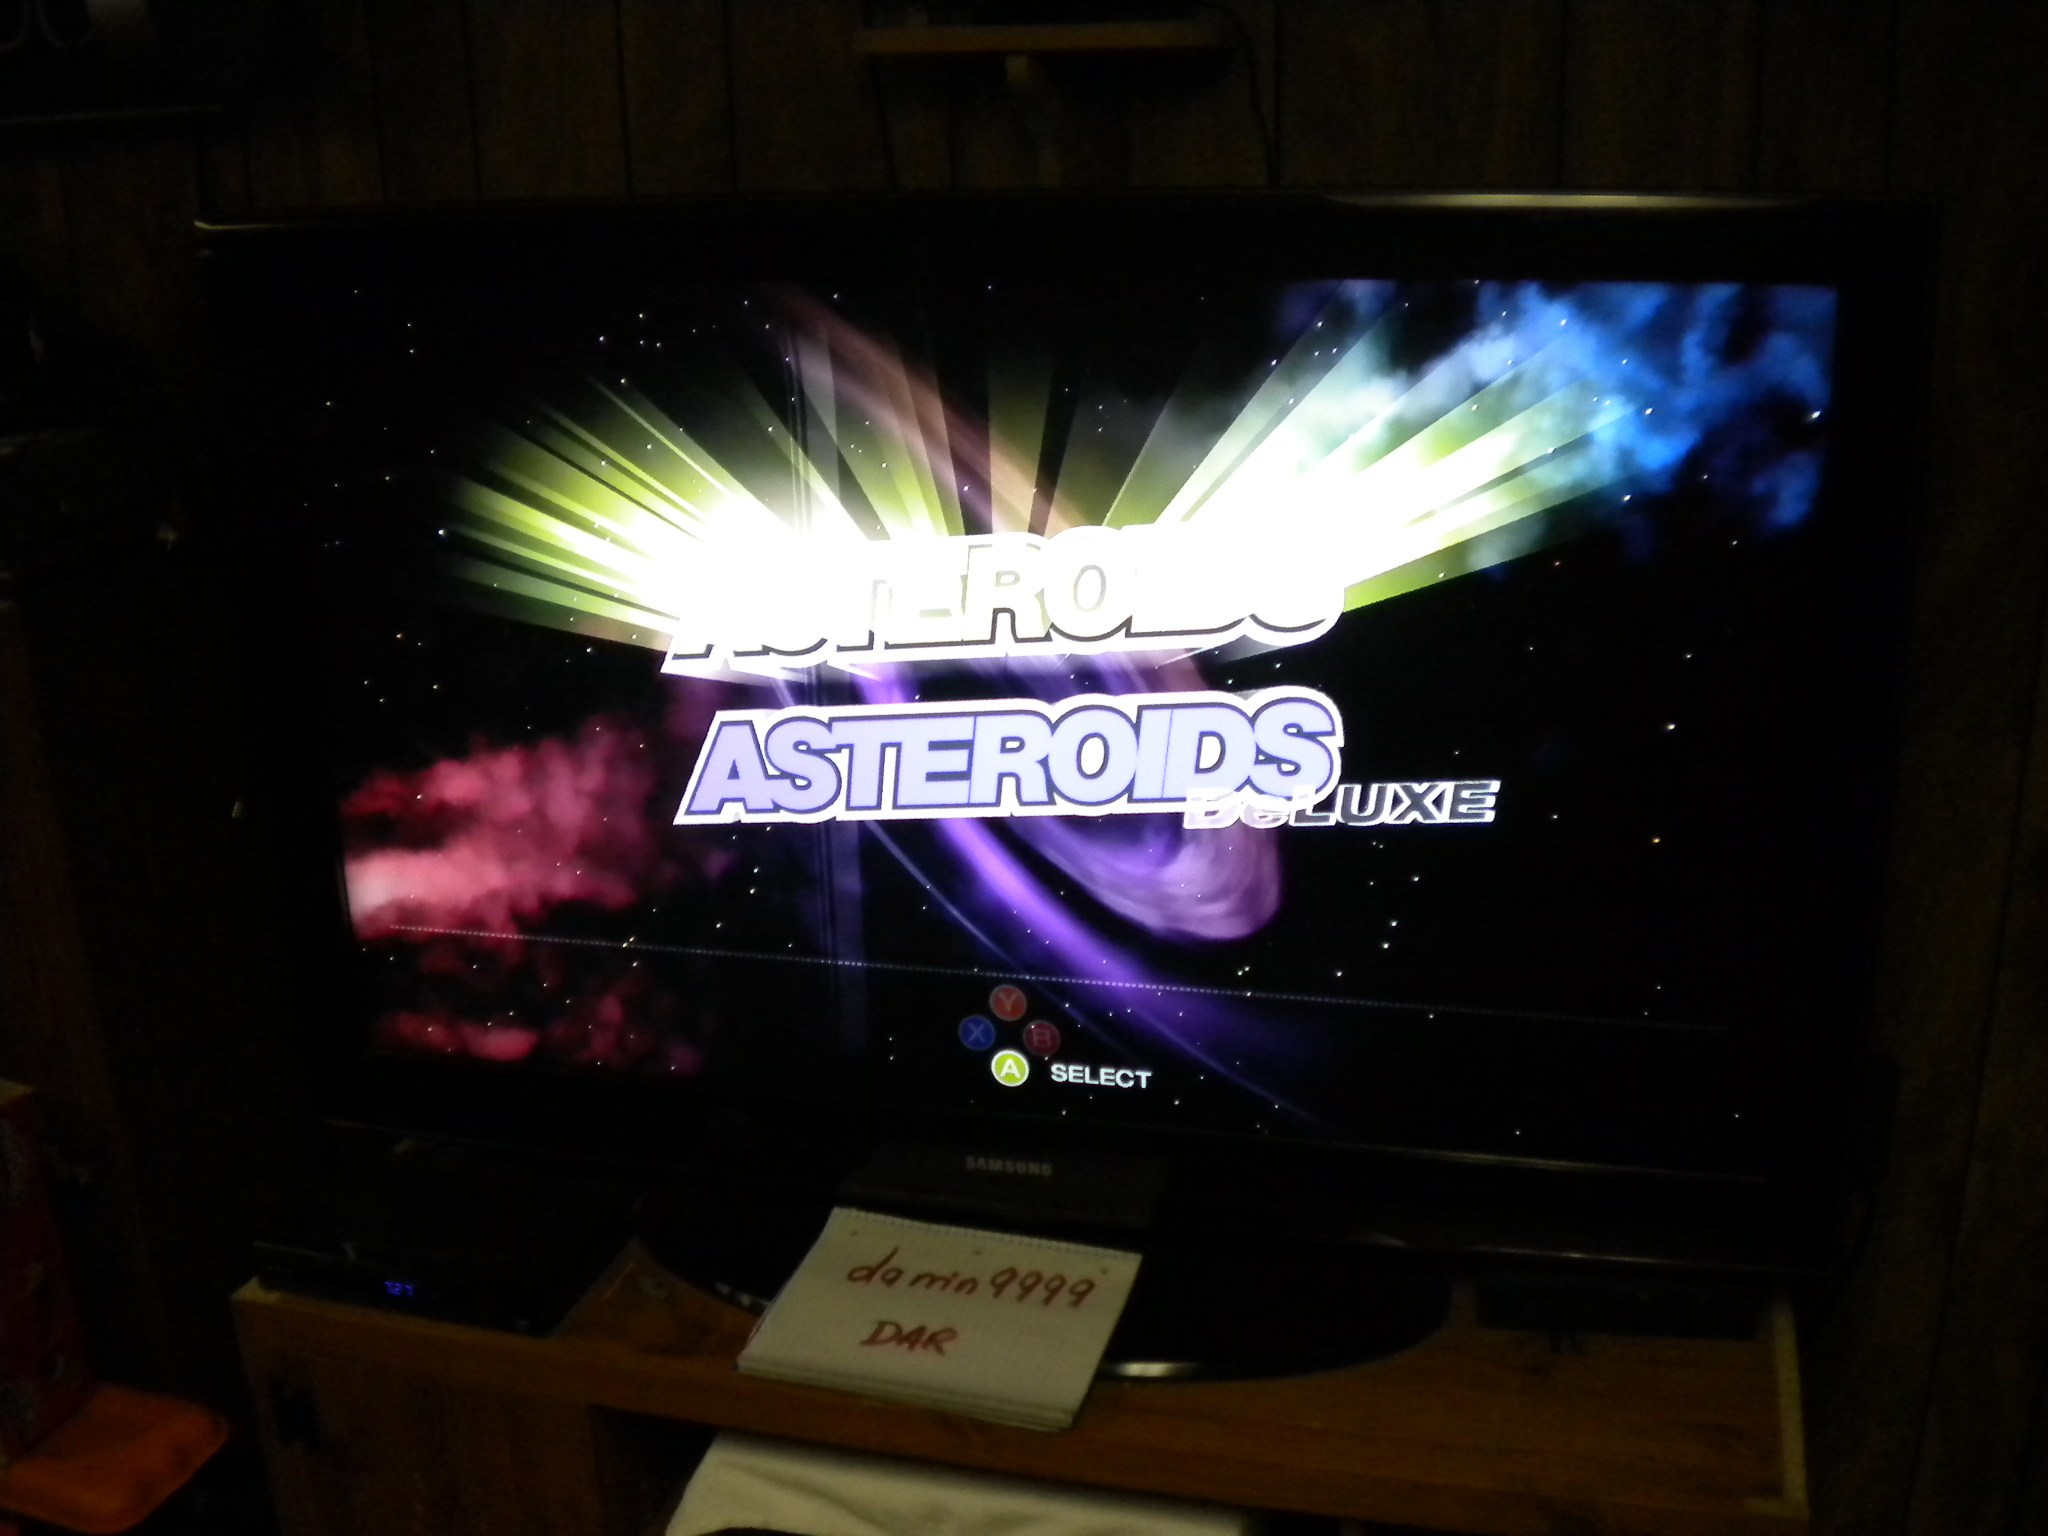 Asteroids [Normal] 5,100 points